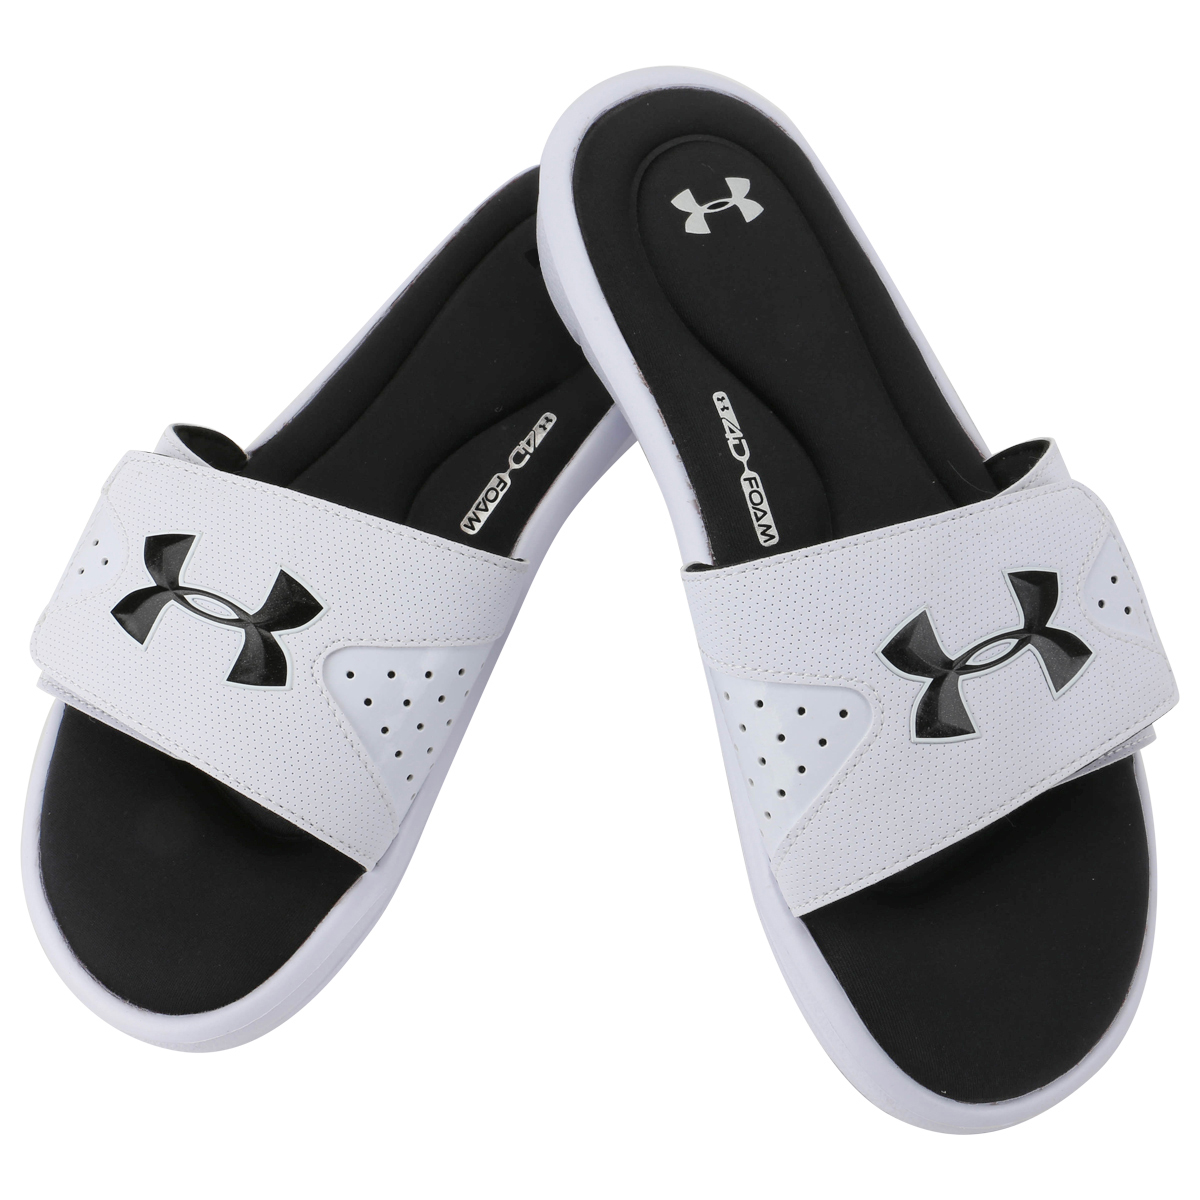 Under Armour Ignite IV Men\u0026#39;s Slide Sandals - White/Black